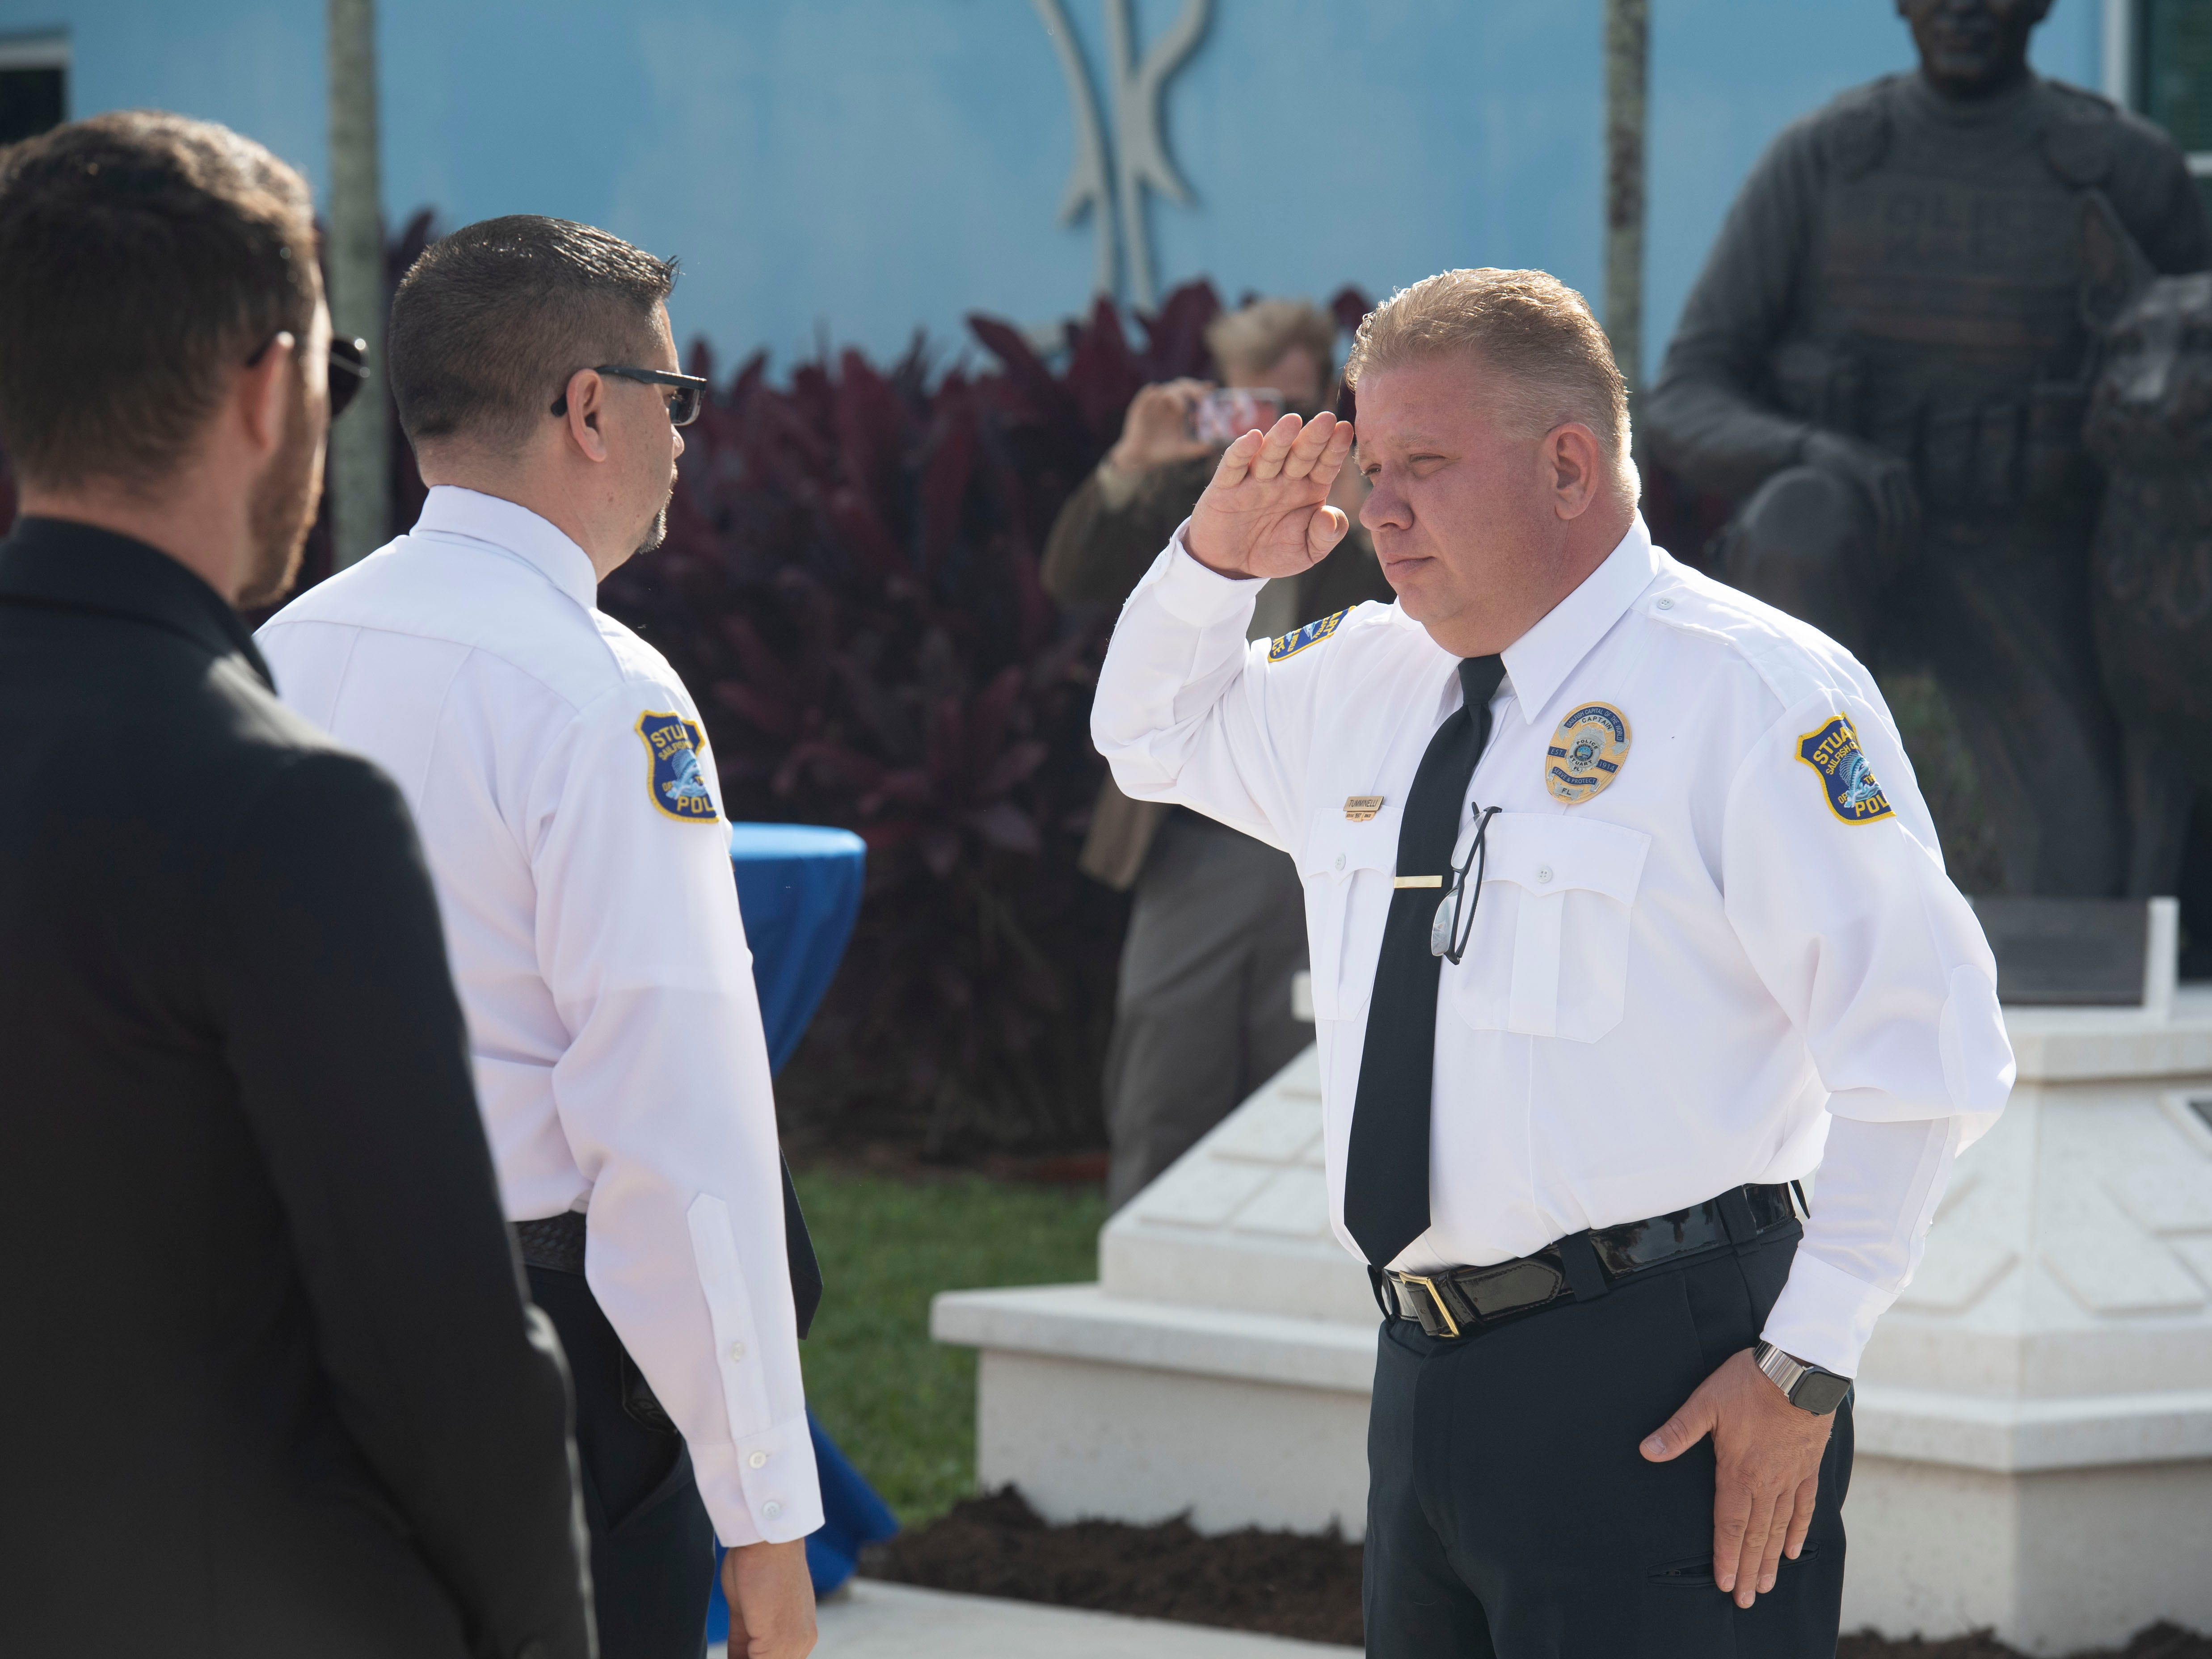 """New Stuart Police Chief Joseph Tumminelli was sworn in as chief Wednesday, Jan. 9, 2019, at the Stuart Police Department. Former chief David Dyess, now Stuart's city manager, appointed Tumminelli, who has been with the department since 1997, to chief in December. """"To the community, I will provide the best customer service to people in need,"""" Tumminelli said during his address to the crowd that featured his friends and family, the Stuart City Commission, other area police chiefs and local dignitaries."""